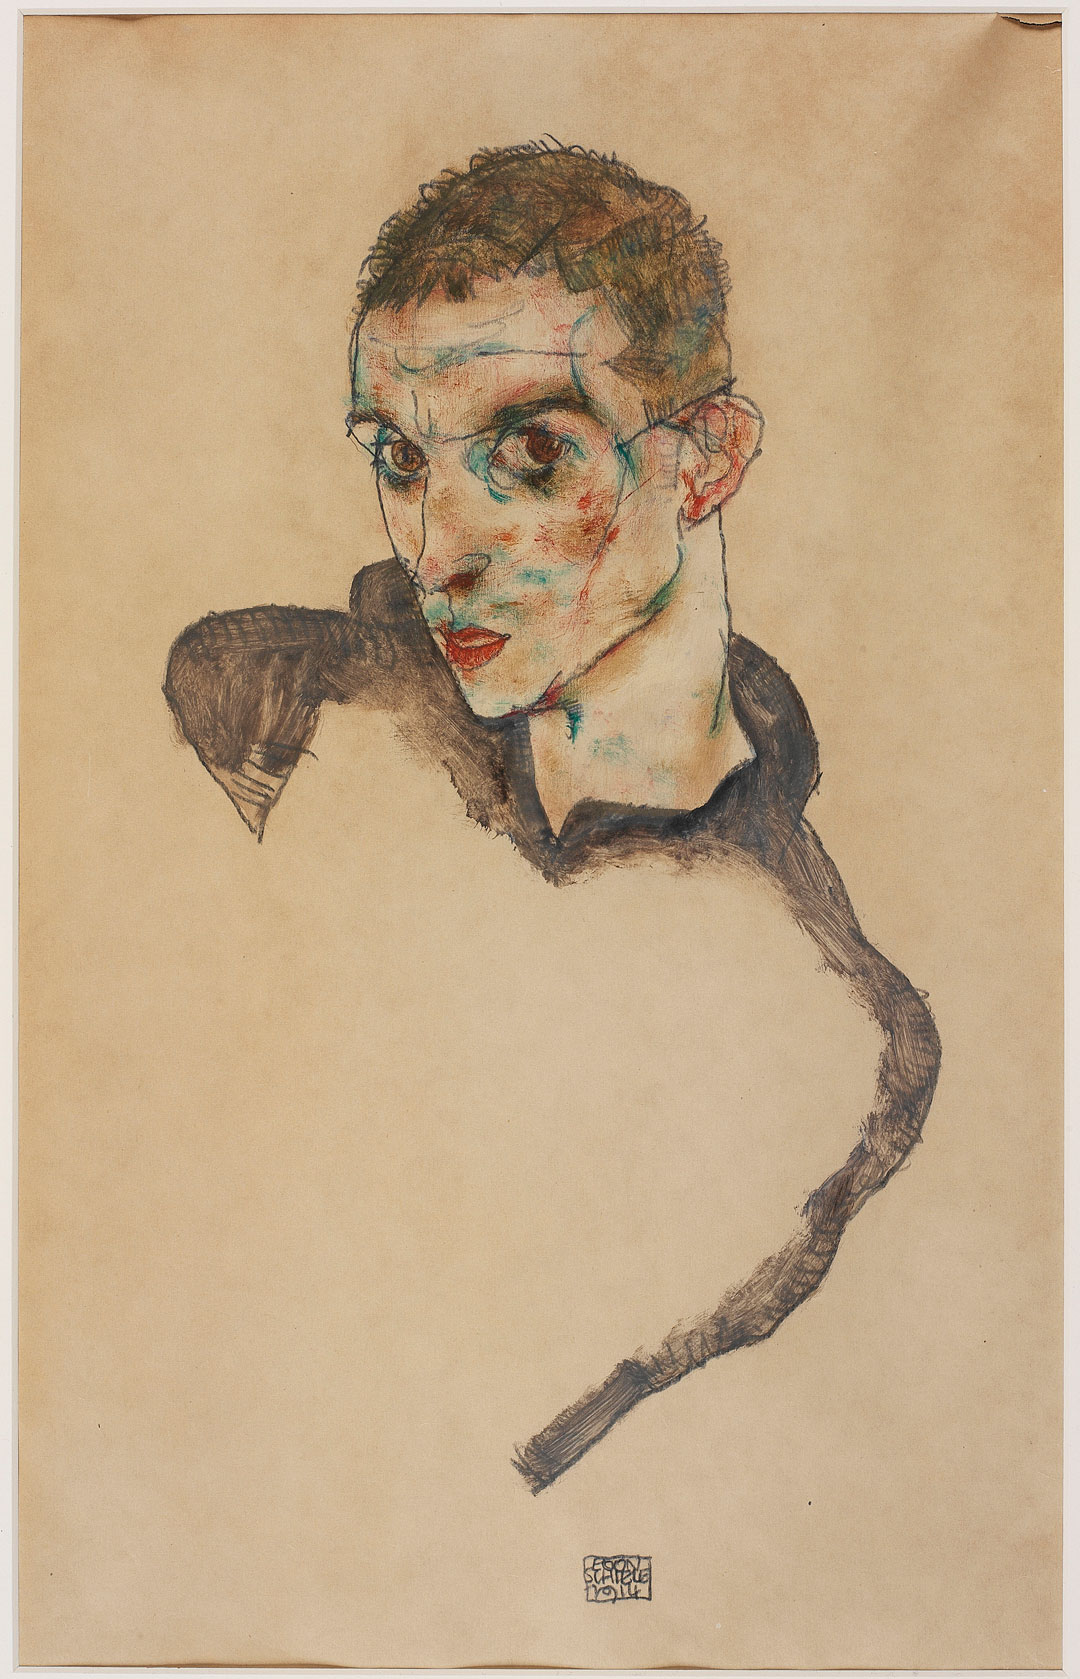 Self-Portrait (1914) by Egon Schiele. All images courtesy of the Tate